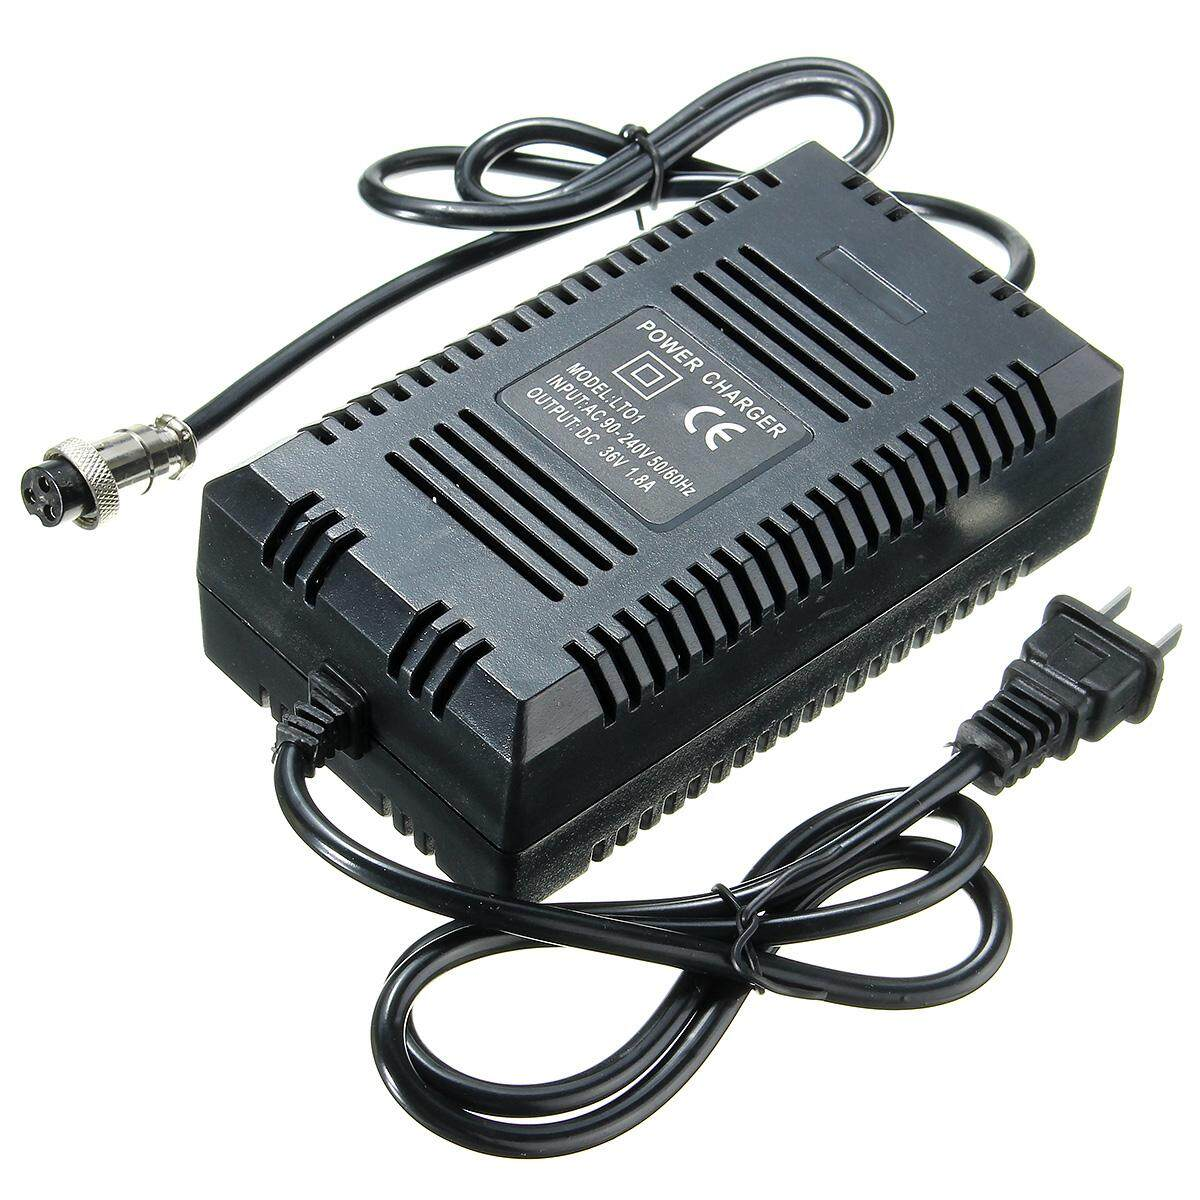 36v Dc 1.6a - 1.8a Amp Battery Charger With Plug For Electric Scooter Bike New By Qiaosha.